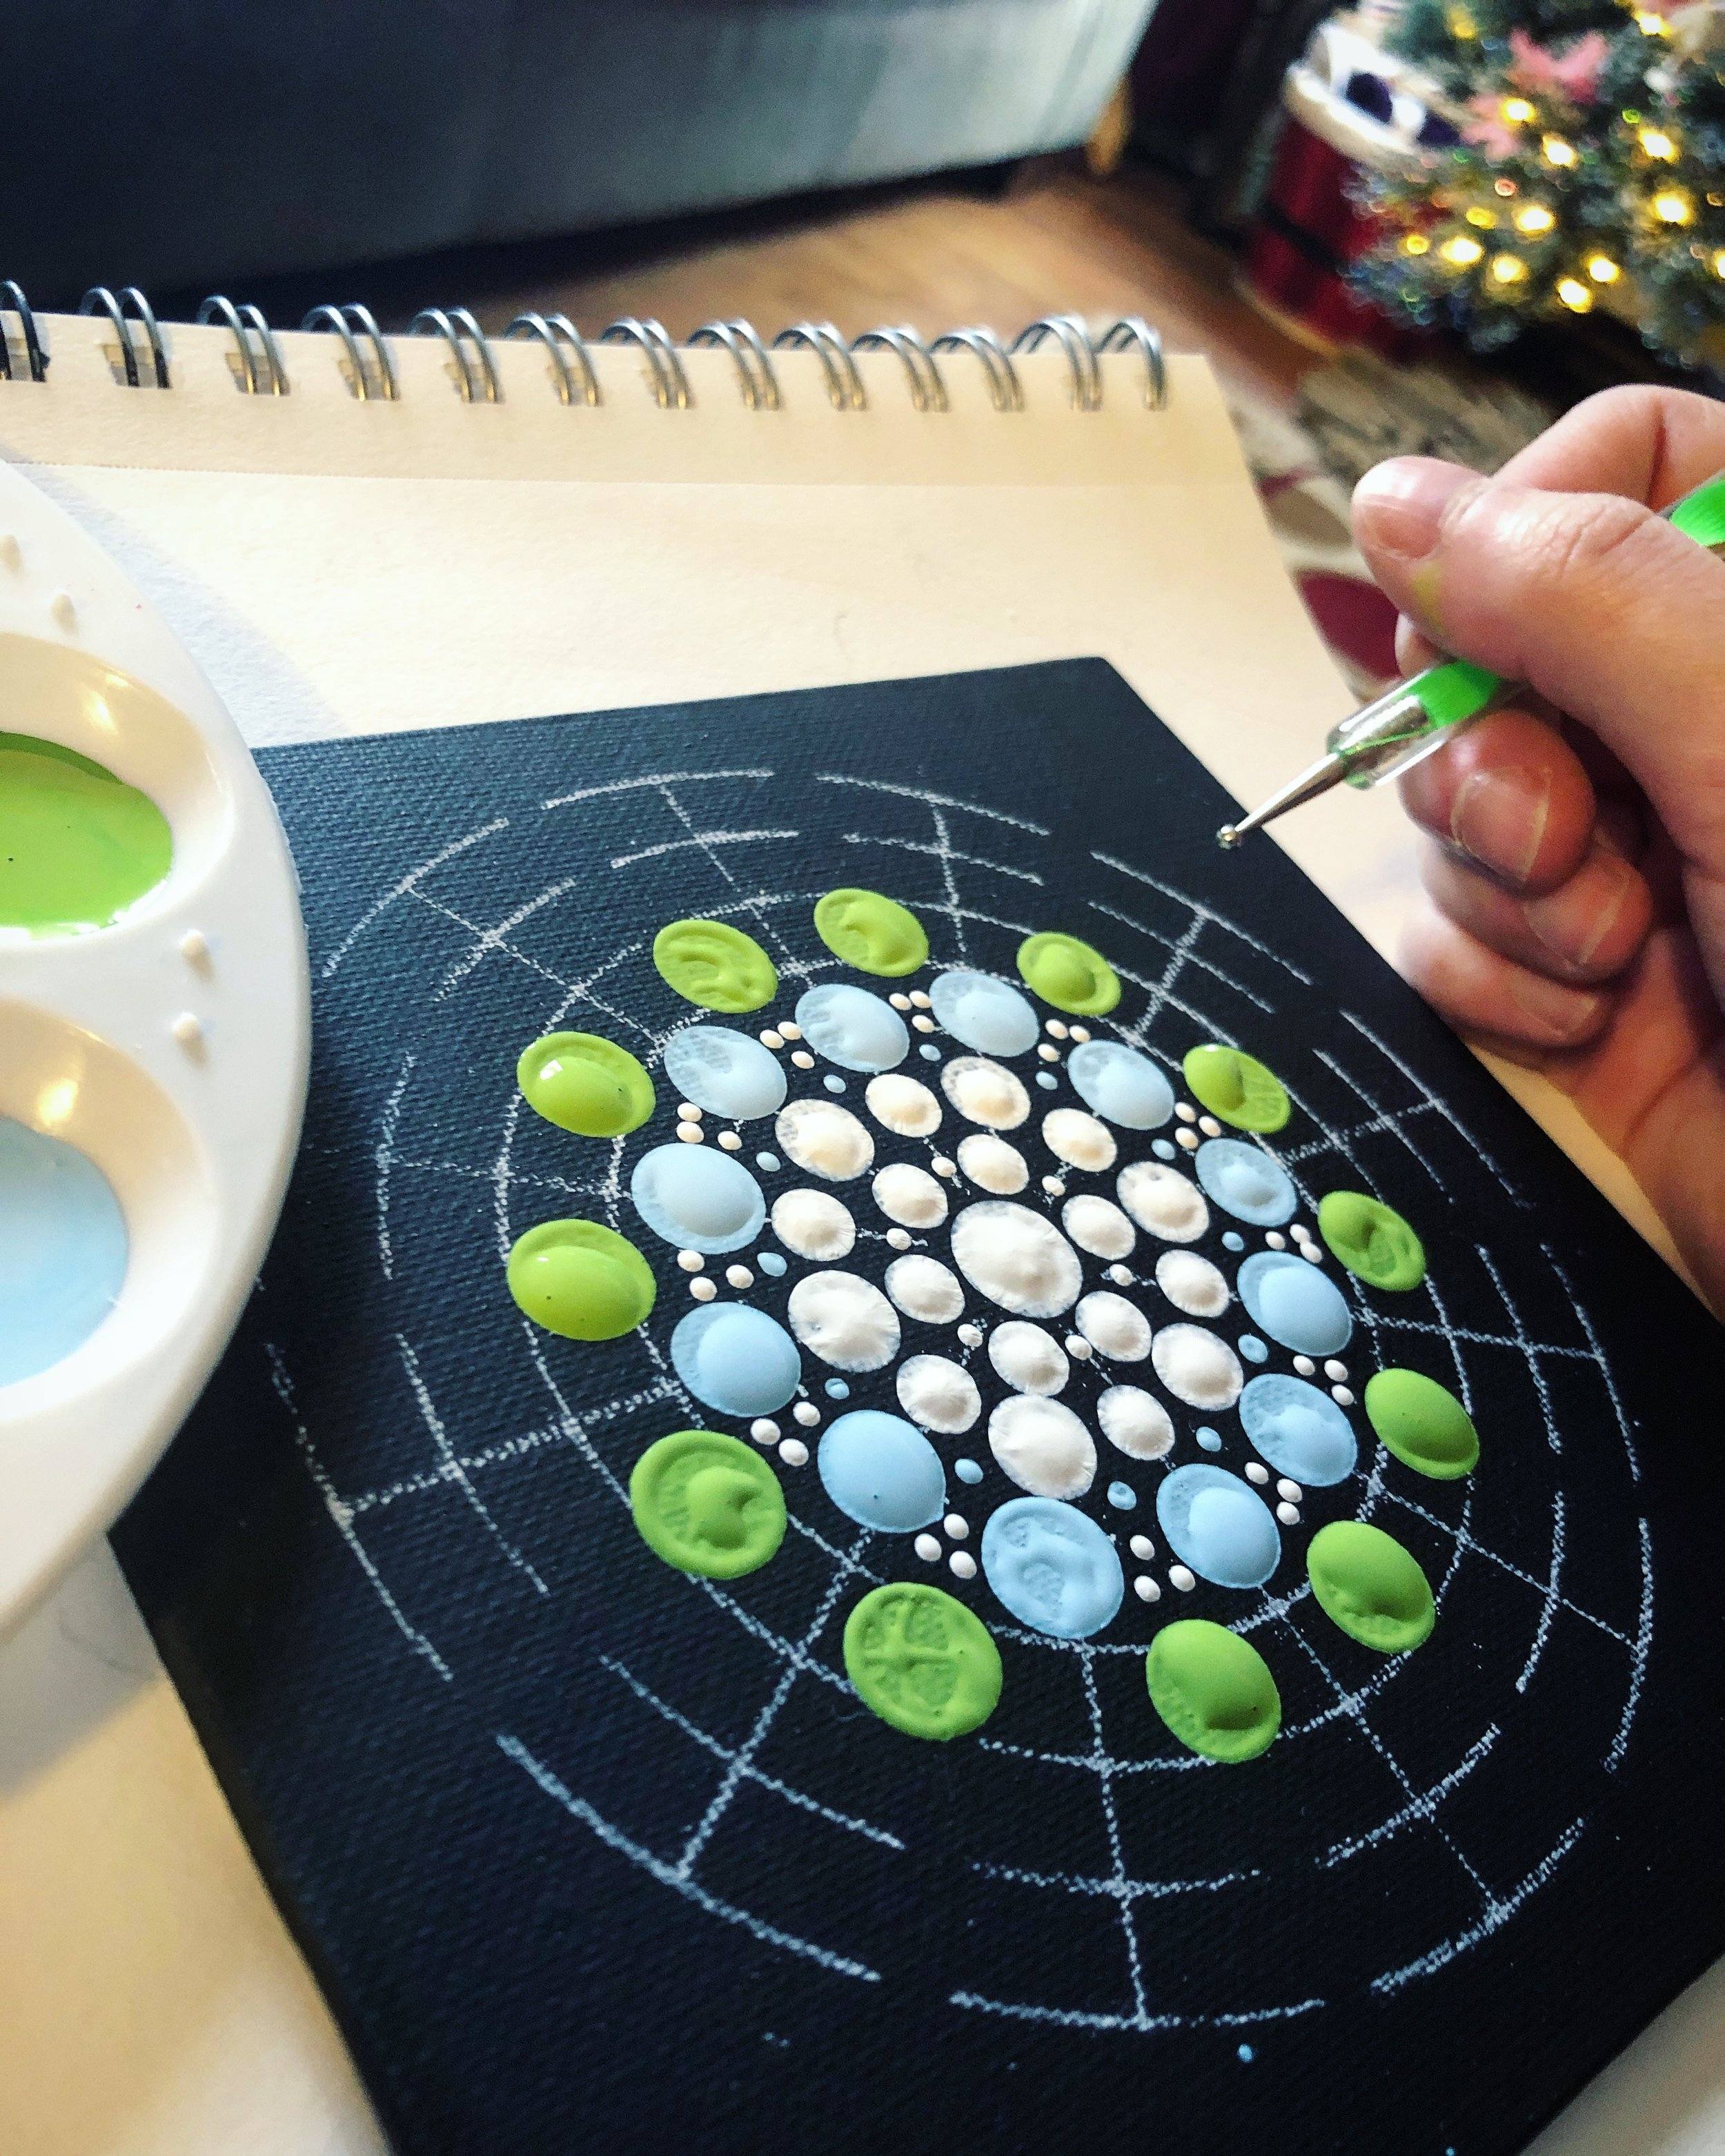 Dot mandalas have consumed my soul (or what was left of us)